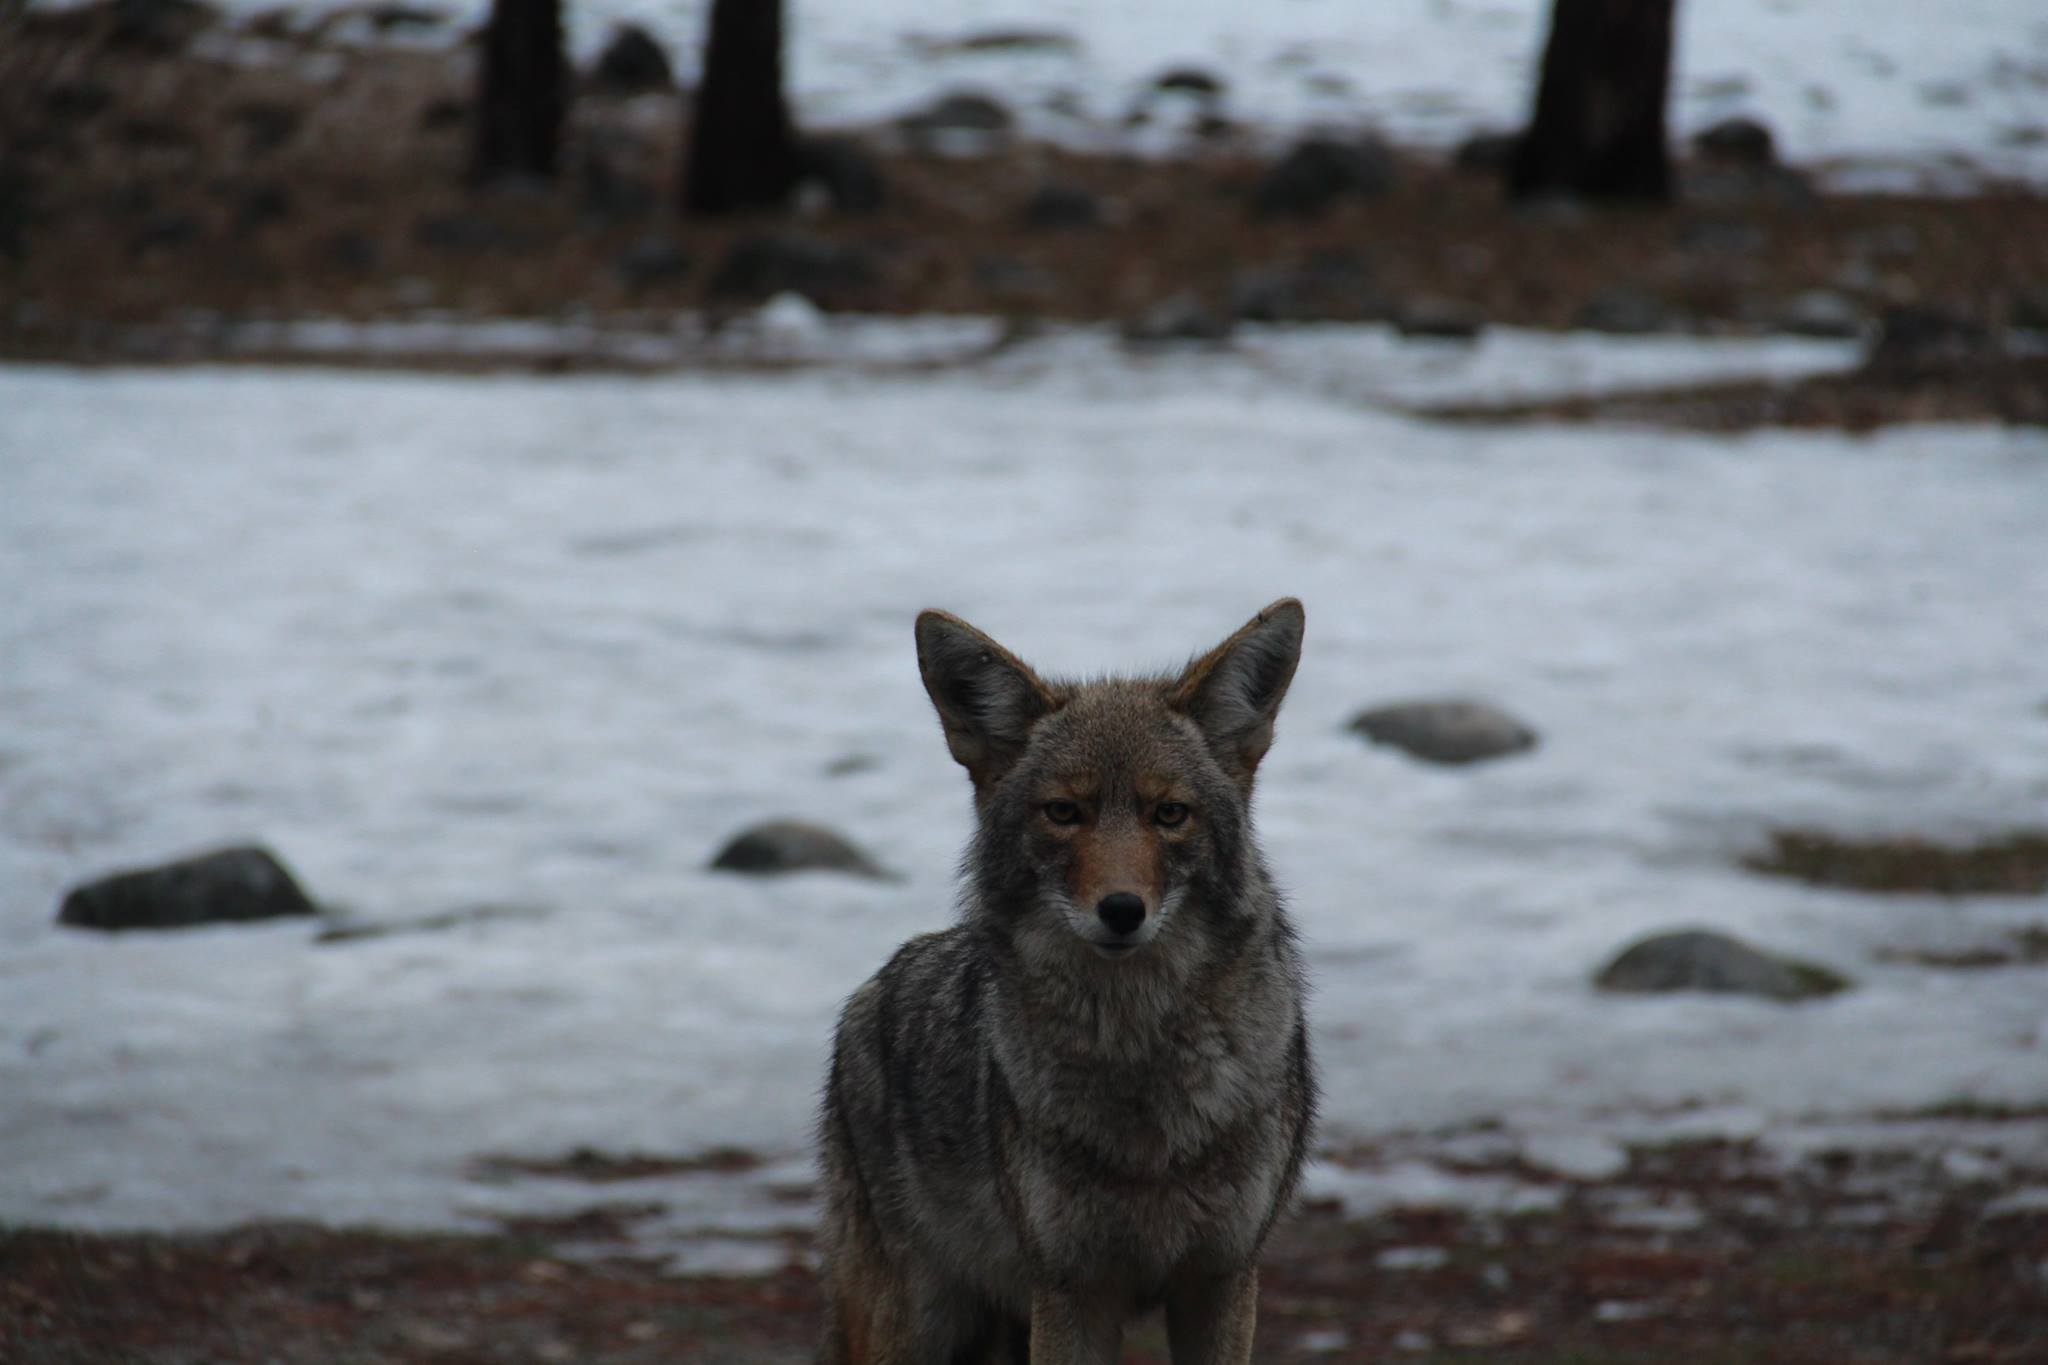 Lone coyote in Yosemite National Park